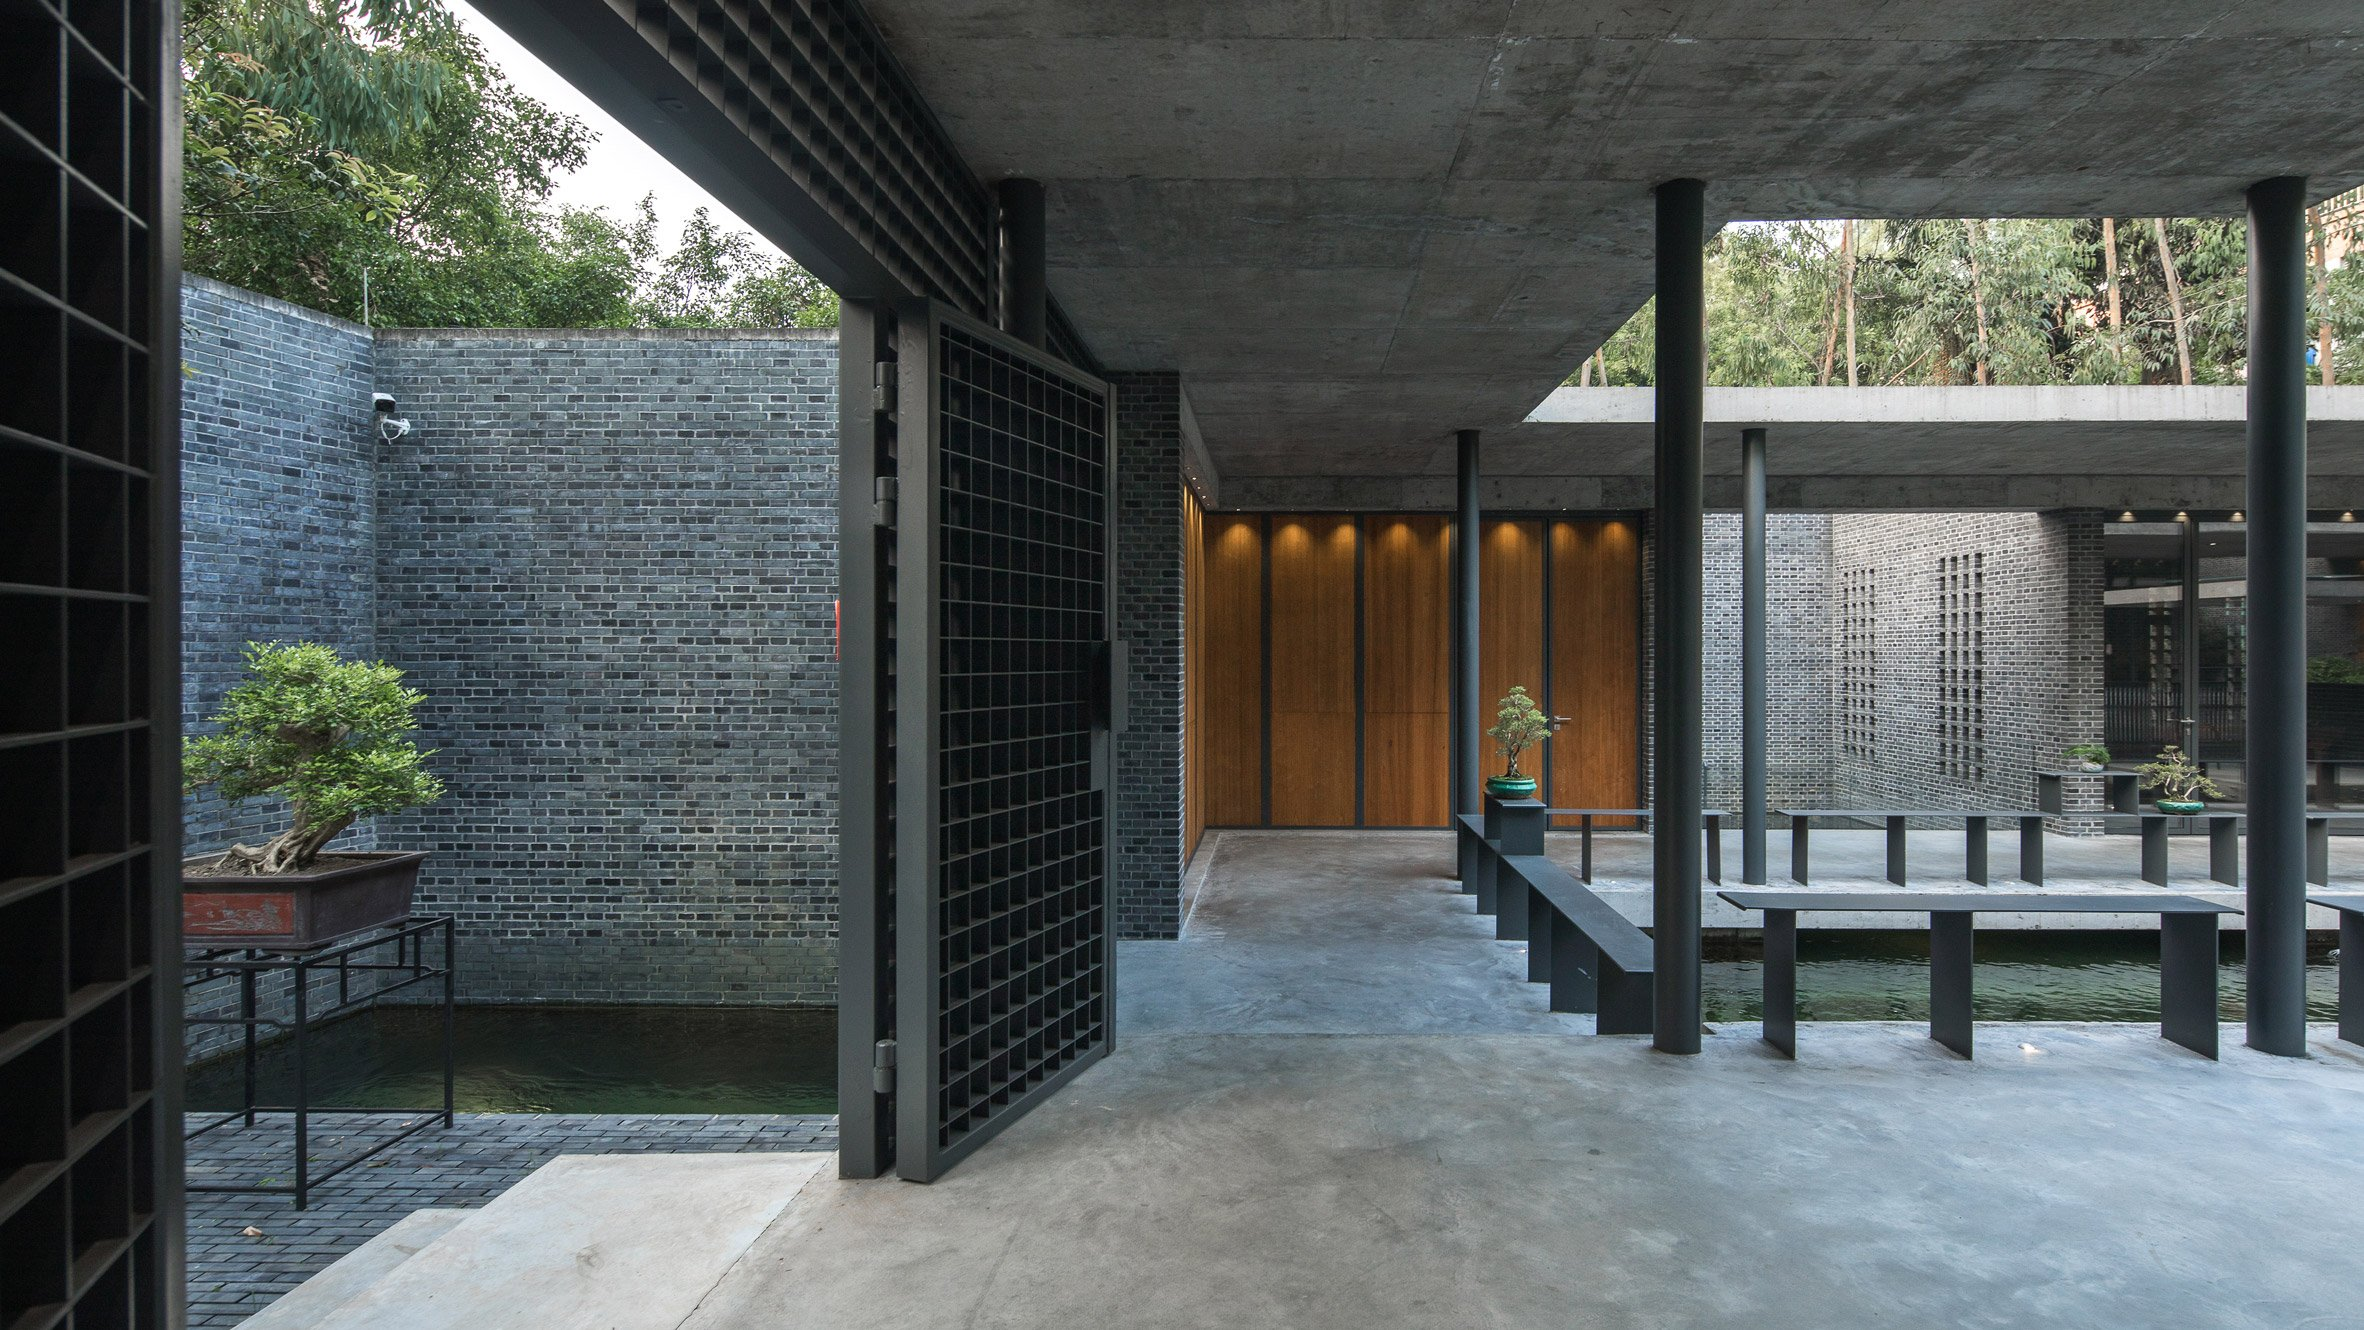 O office architects reinterprets traditional chinese courtyard house